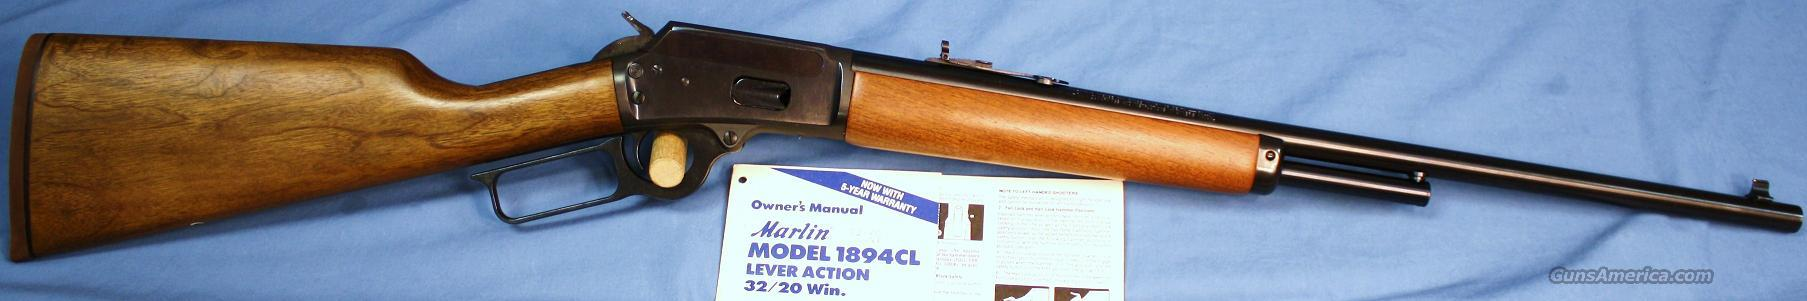 Marlin 1894CL Lever Action Rifle .32-20 Win.  Guns > Rifles > Marlin Rifles > Modern > Lever Action